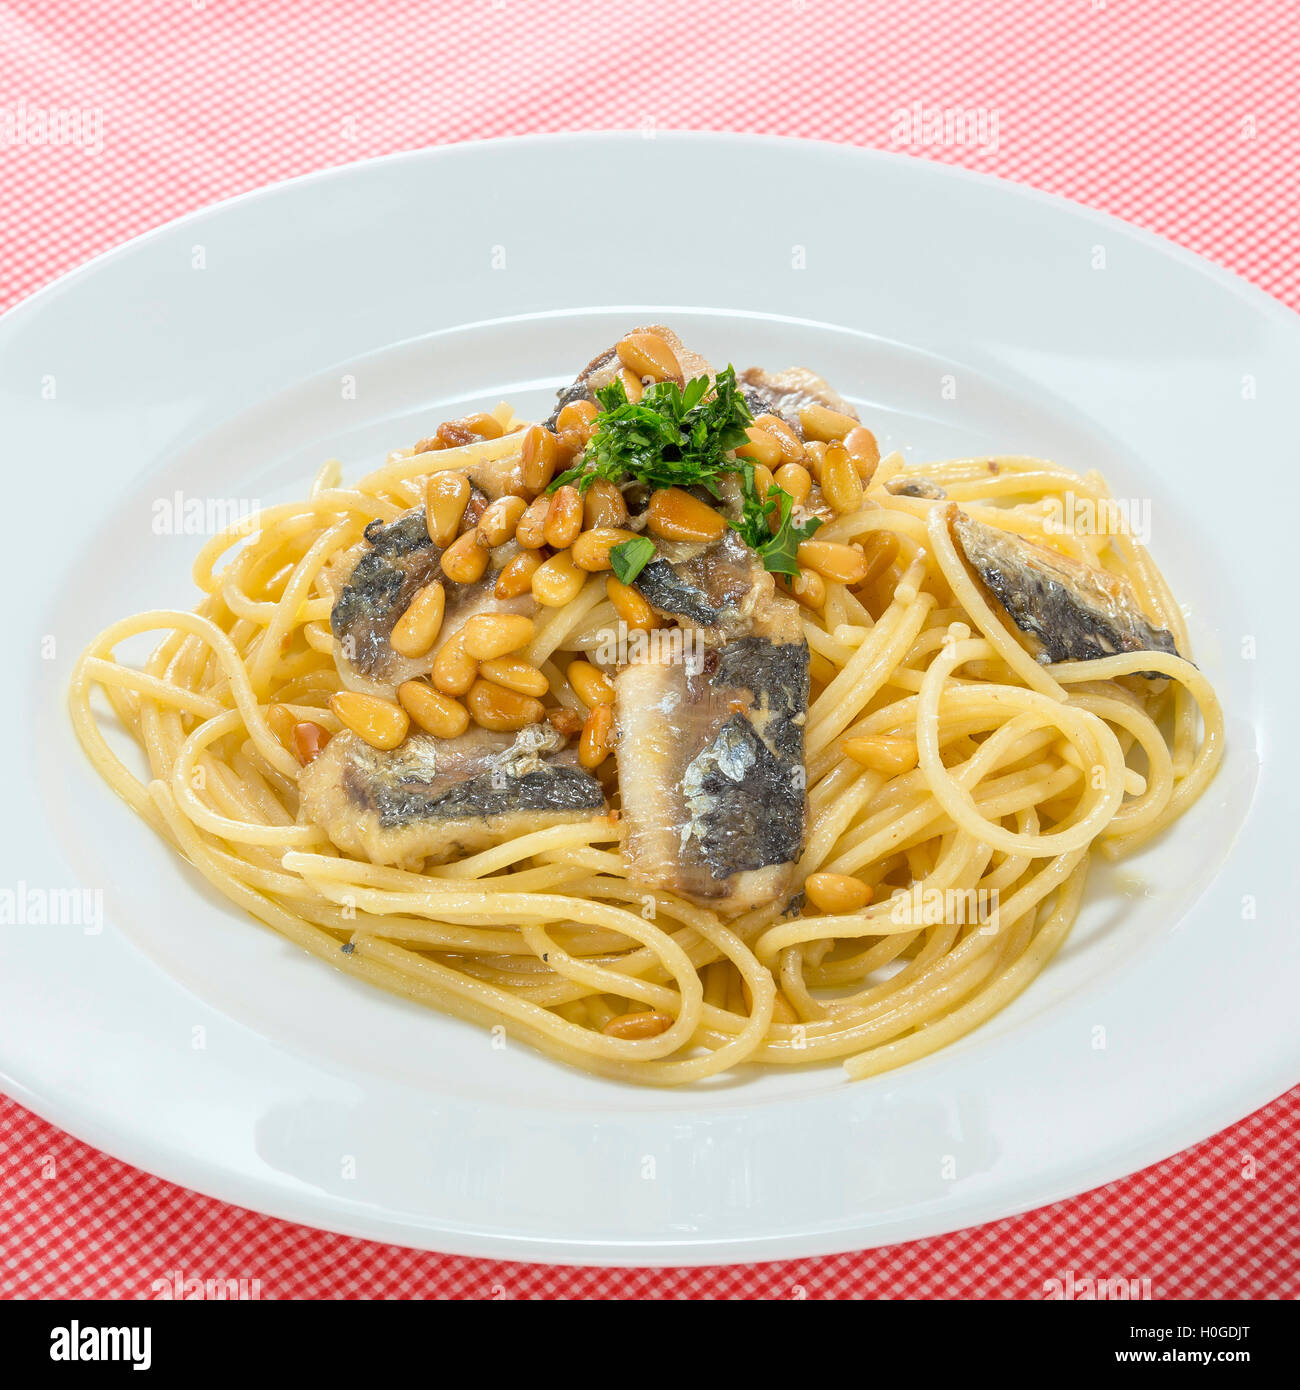 Noodle pasta with sardine fish on white platter - Stock Image